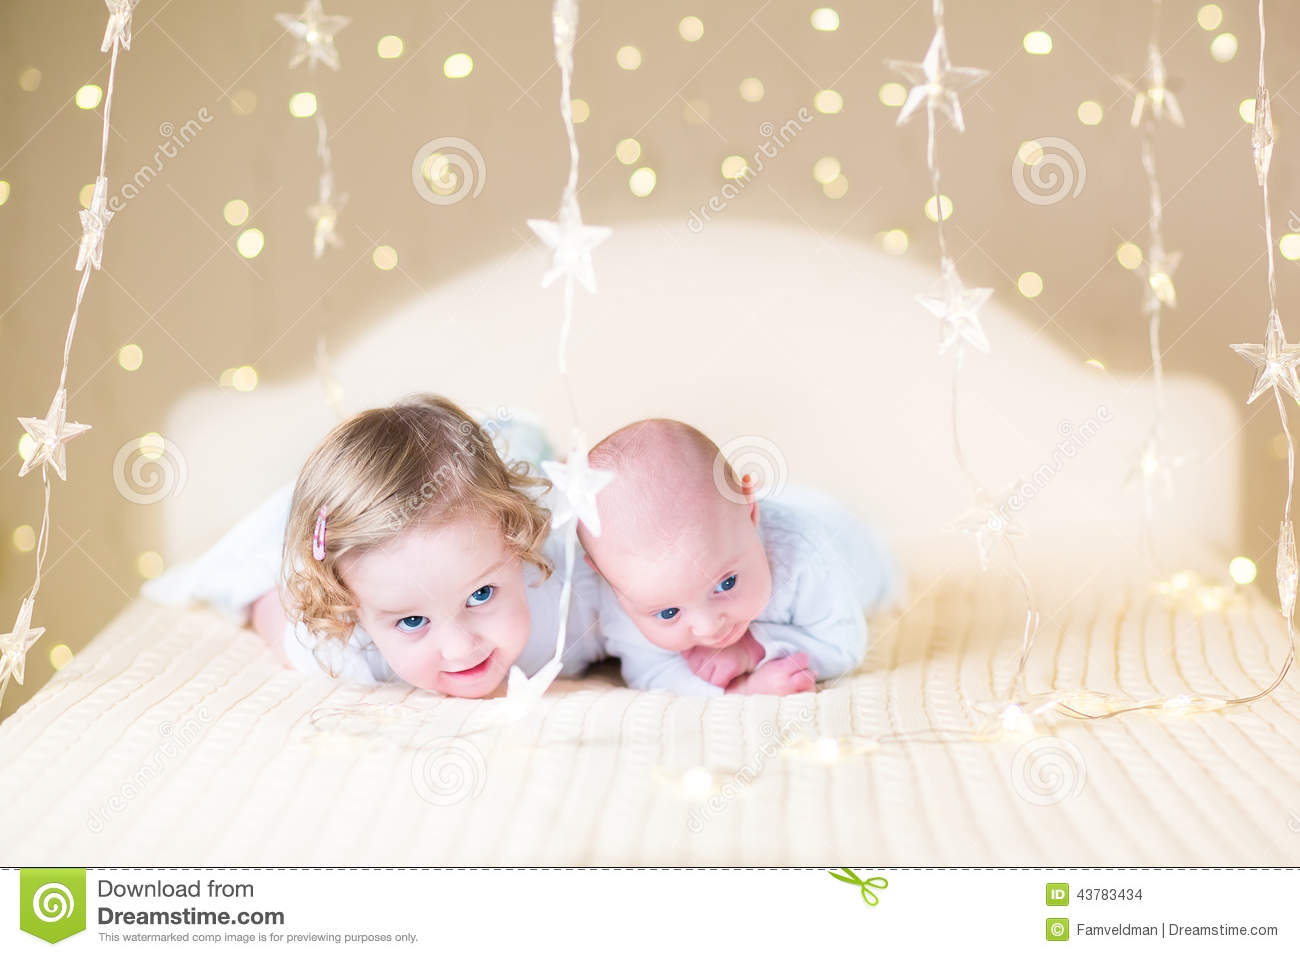 Cute toddler girl and her little newborn baby brother with warm soft lights